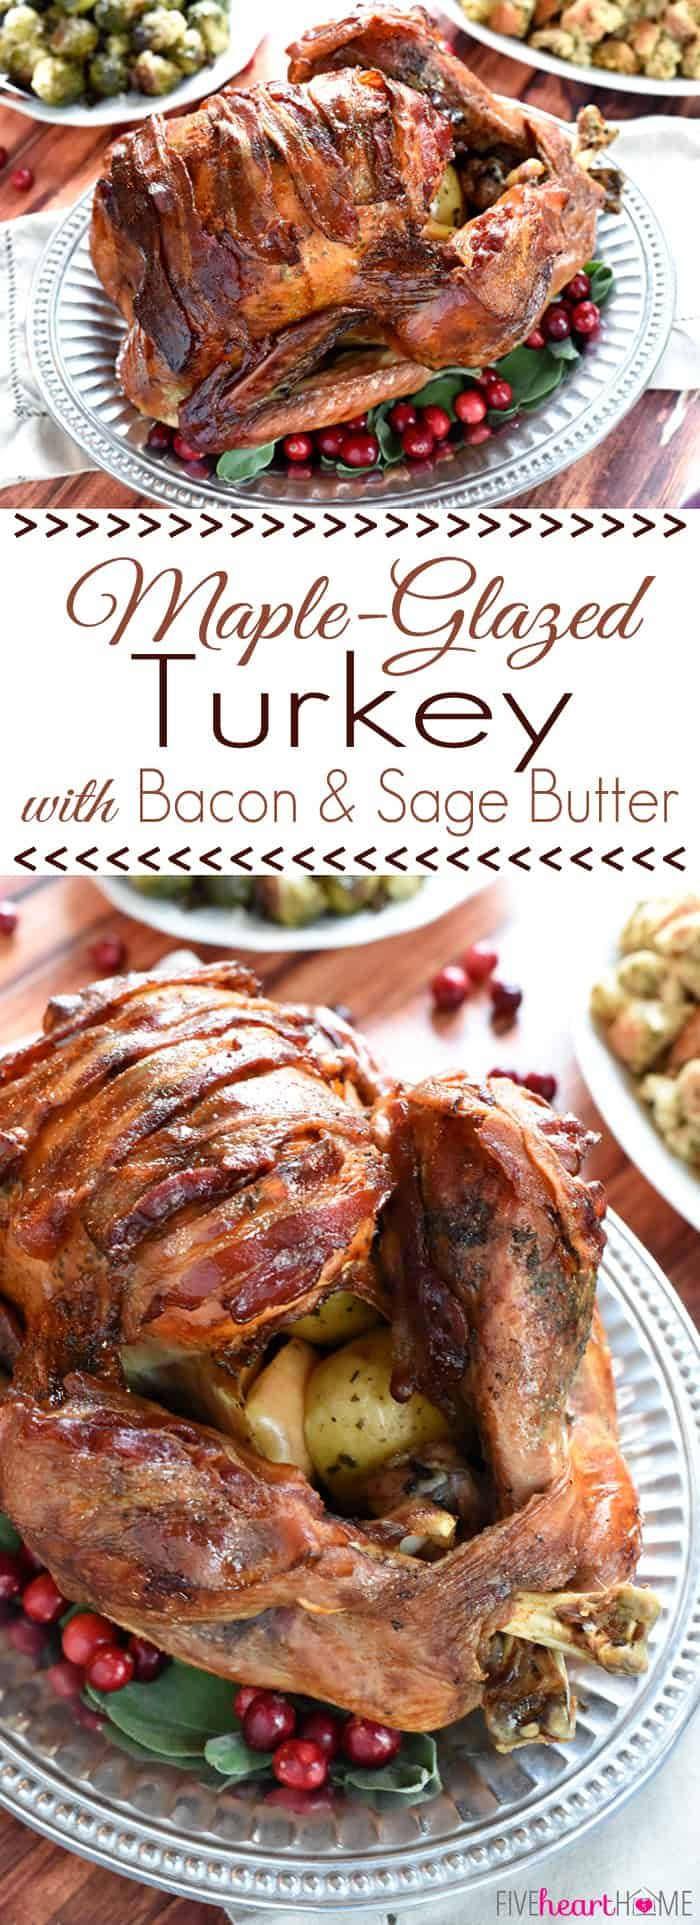 Photo of 20 Thanksgiving Turkey Recipes For The Perfect Roast